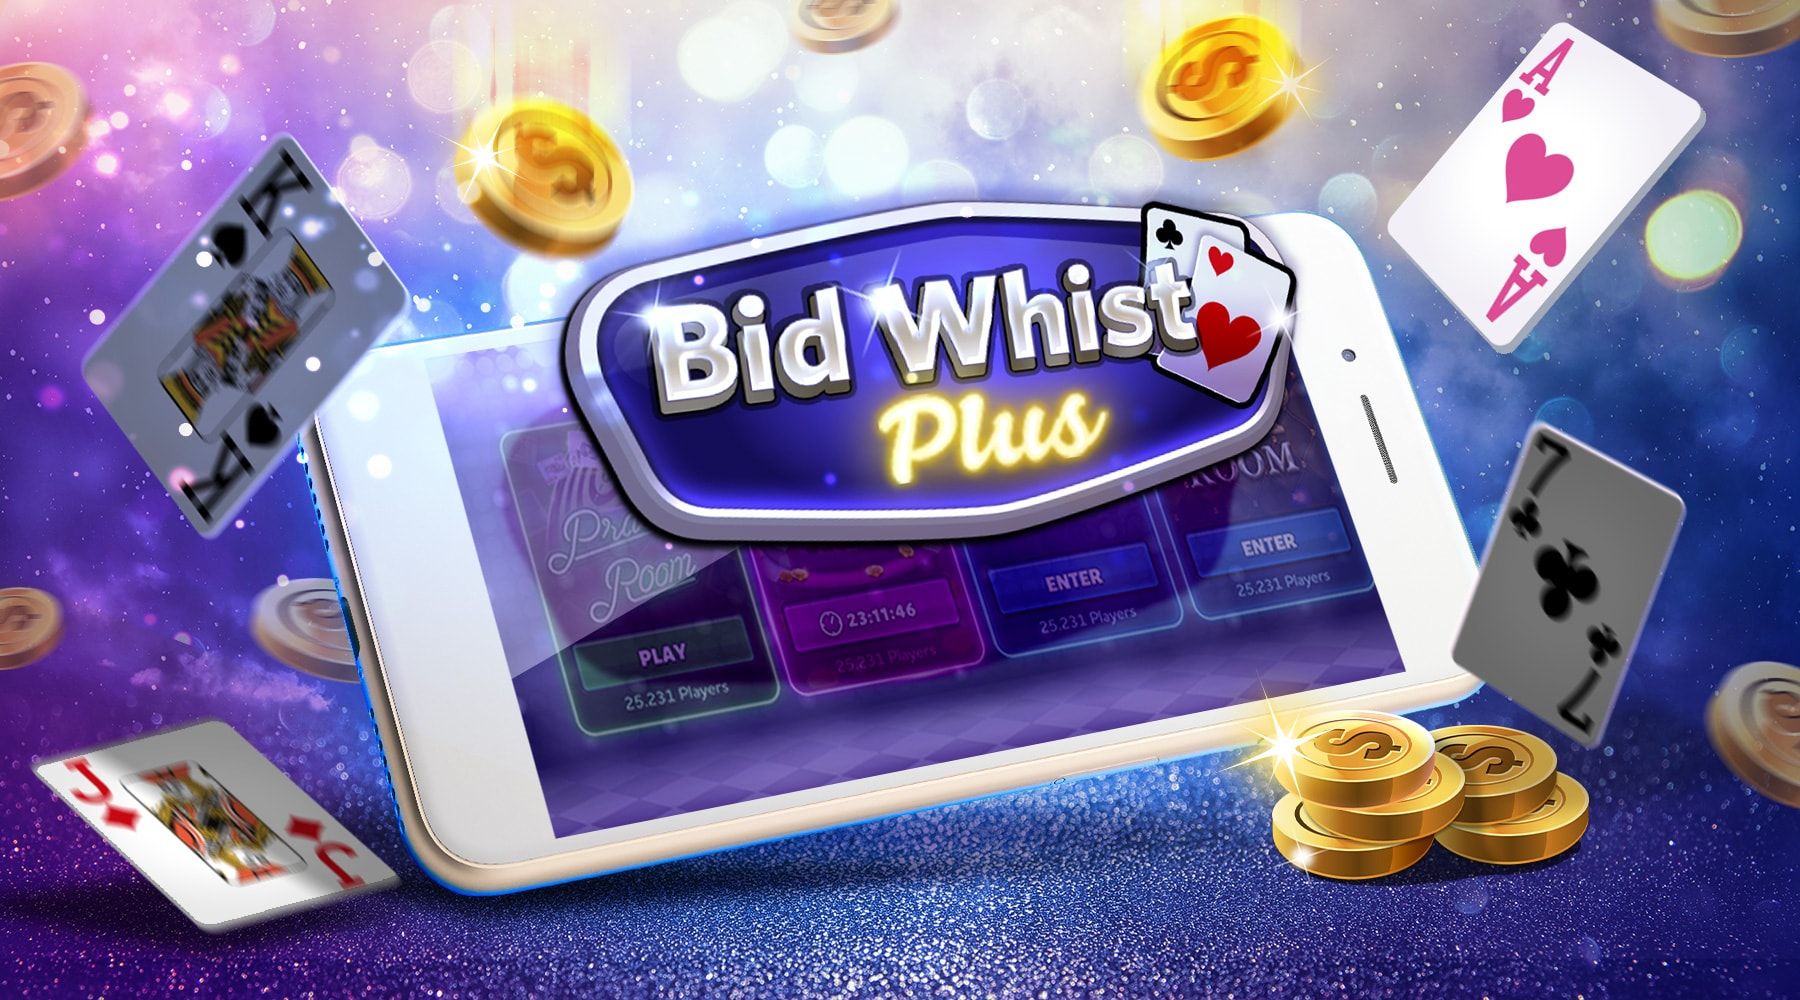 Bid Whist Plus Hero Image